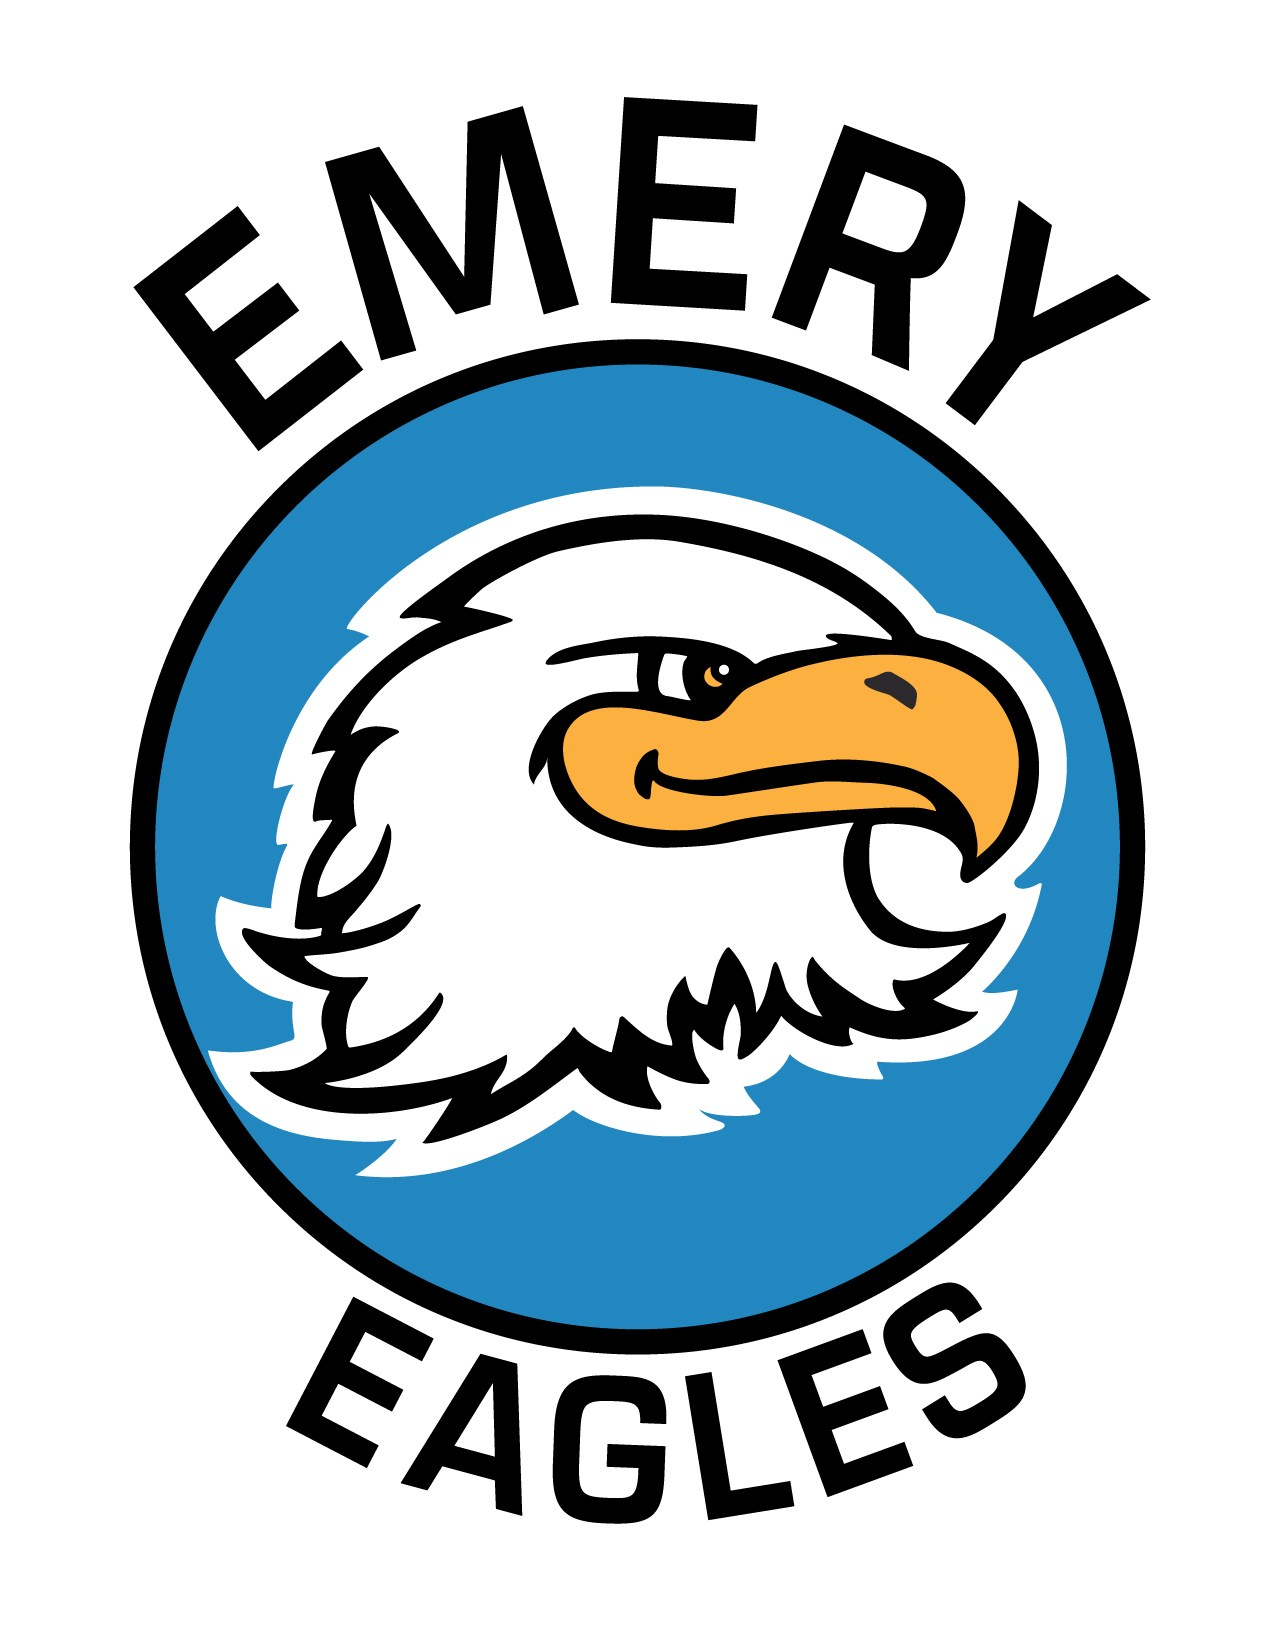 Emery Eagle logo